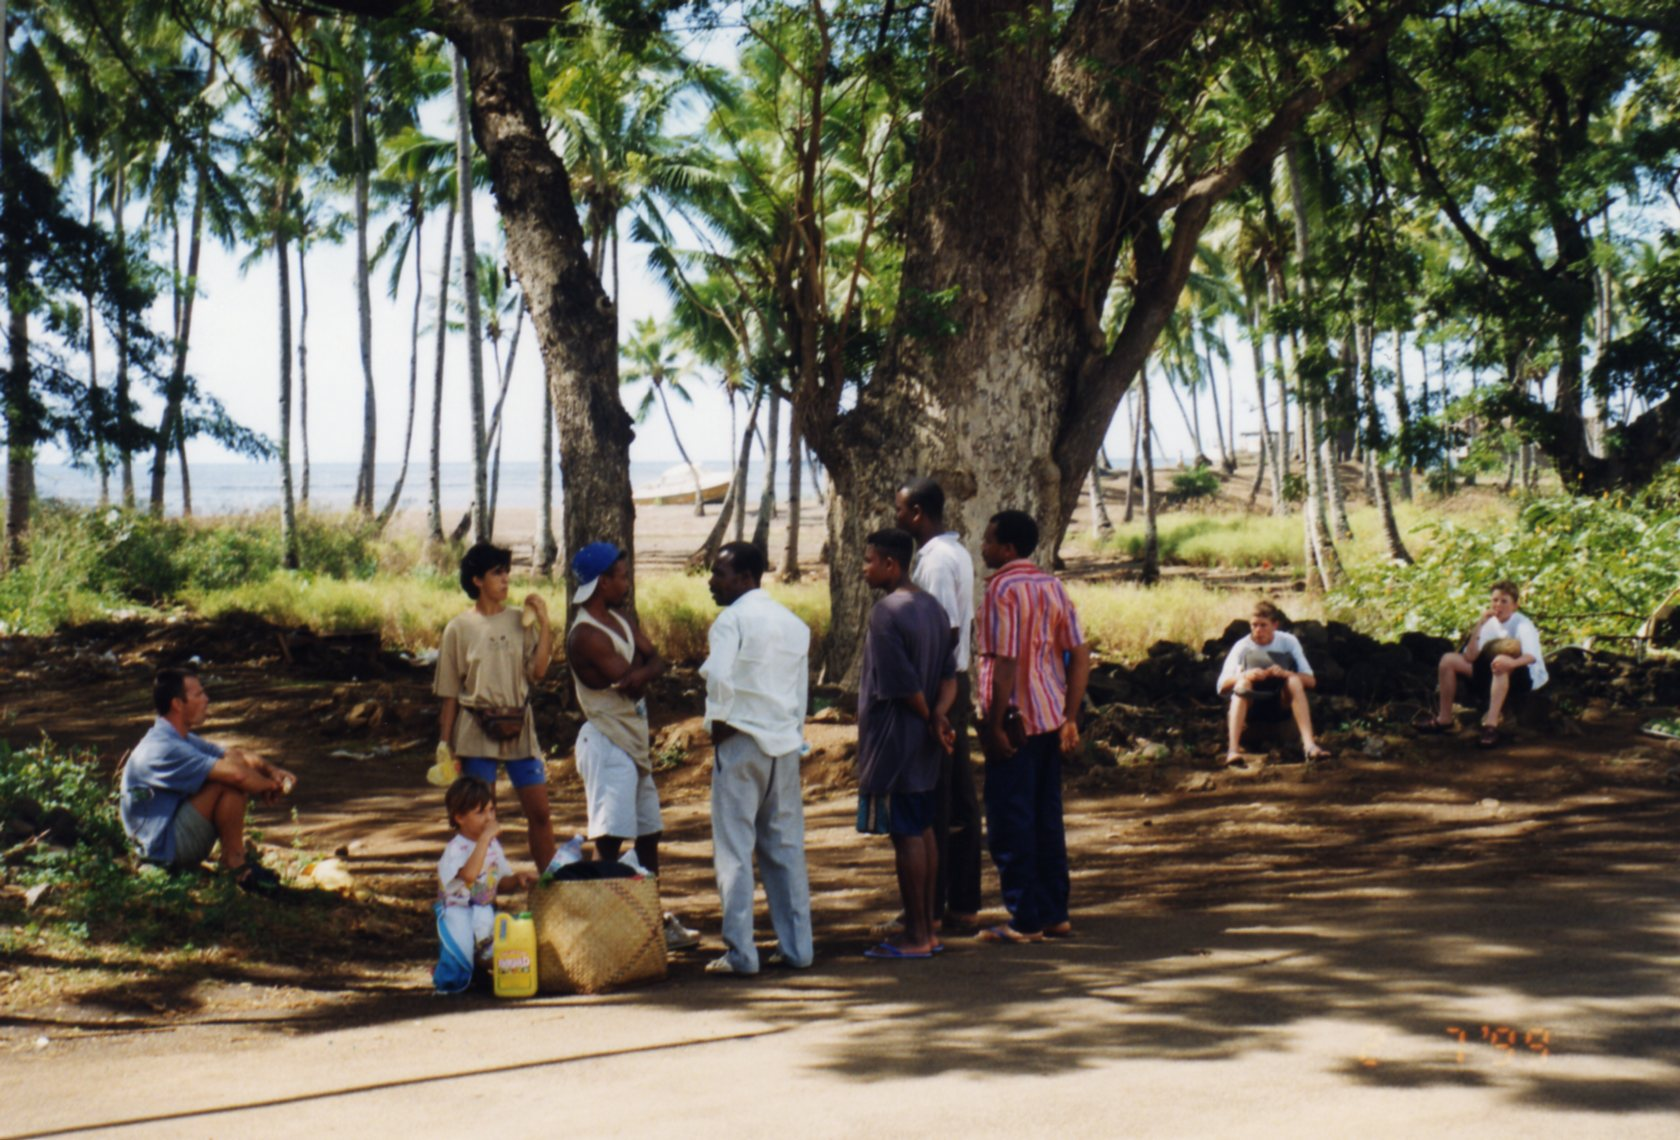 Waiting for taxi at Fomboni, eating rations of French bread and cheese